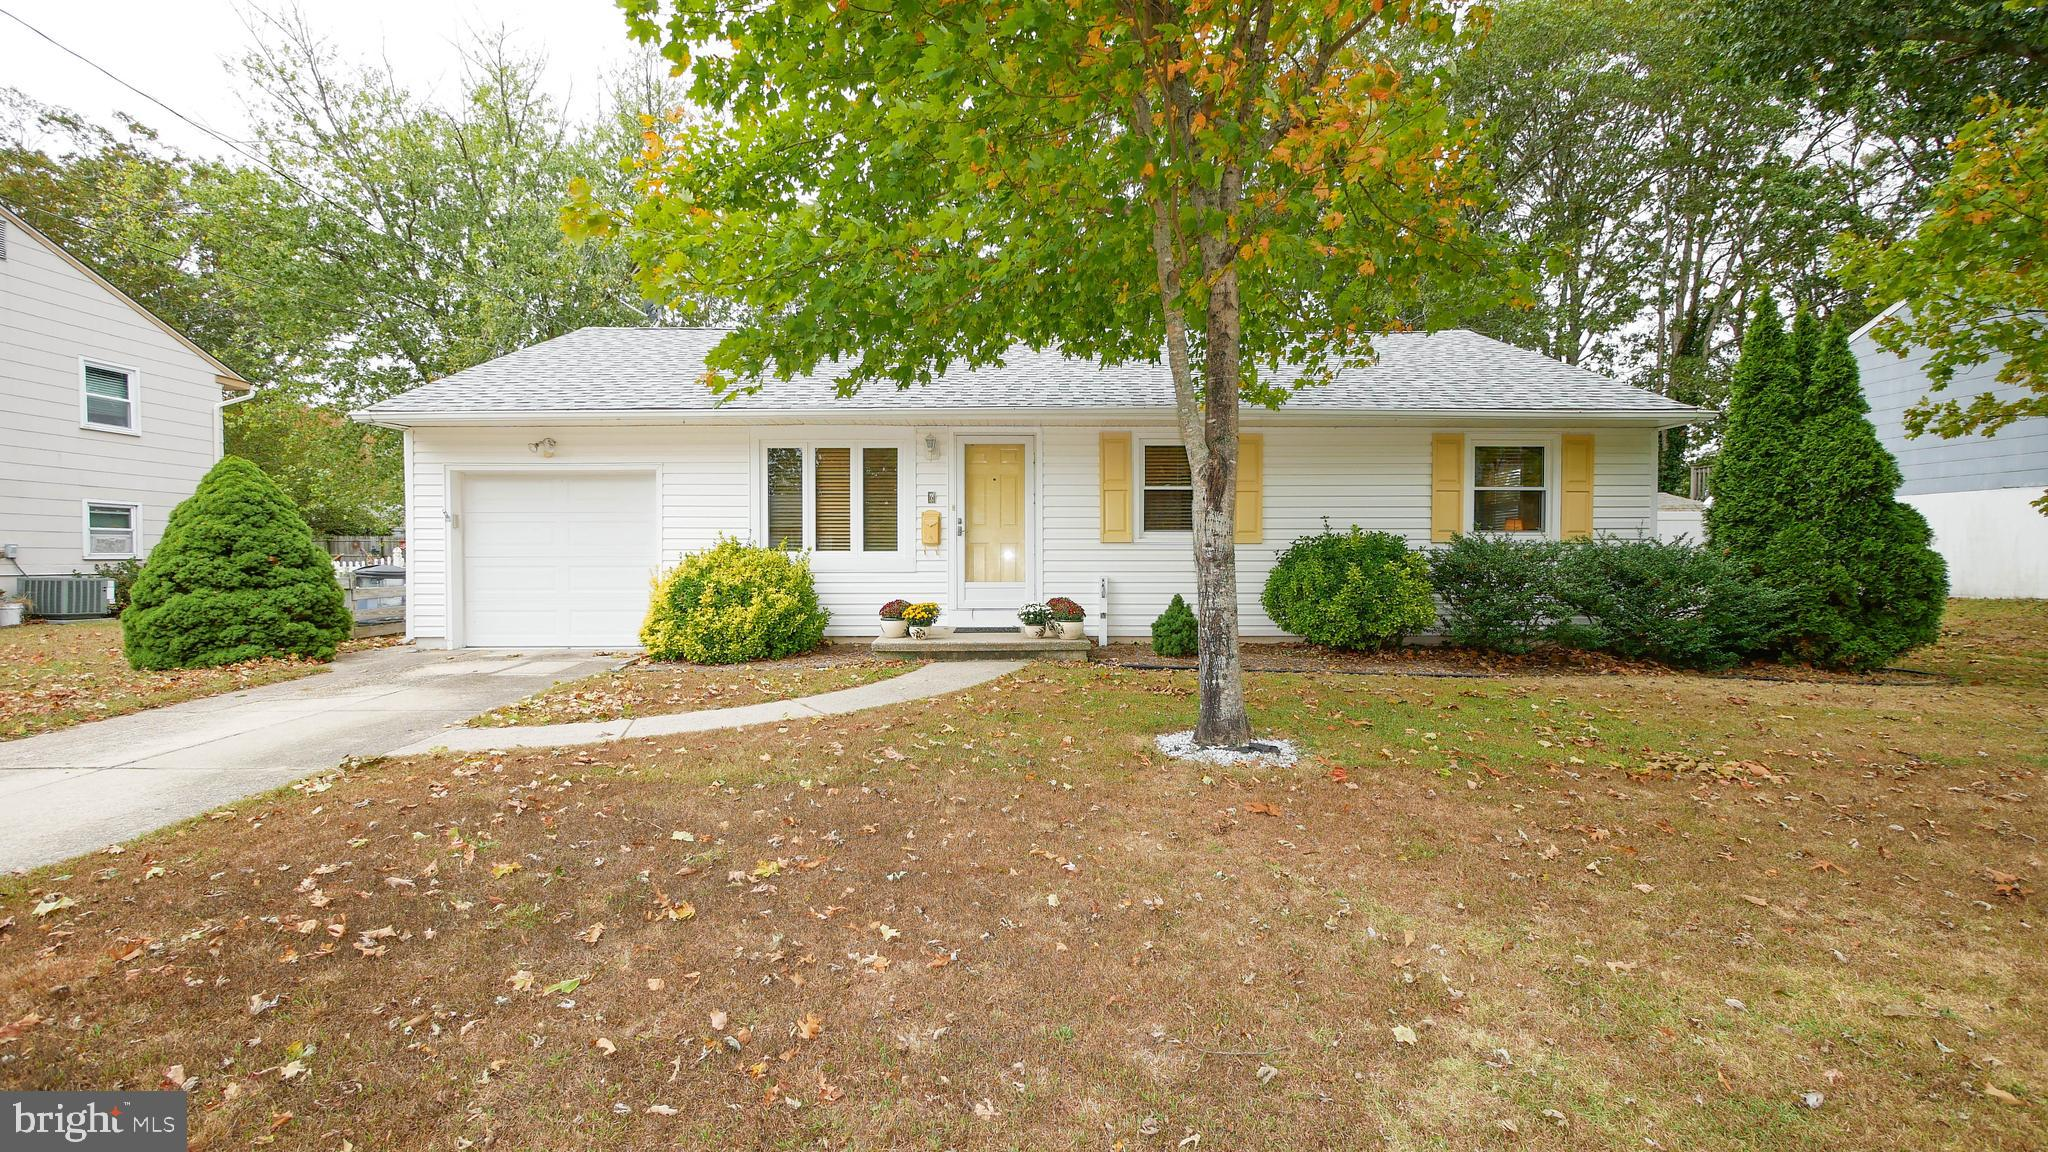 6 SOUTHVIEW DRIVE, SOMERS POINT, NJ 08244